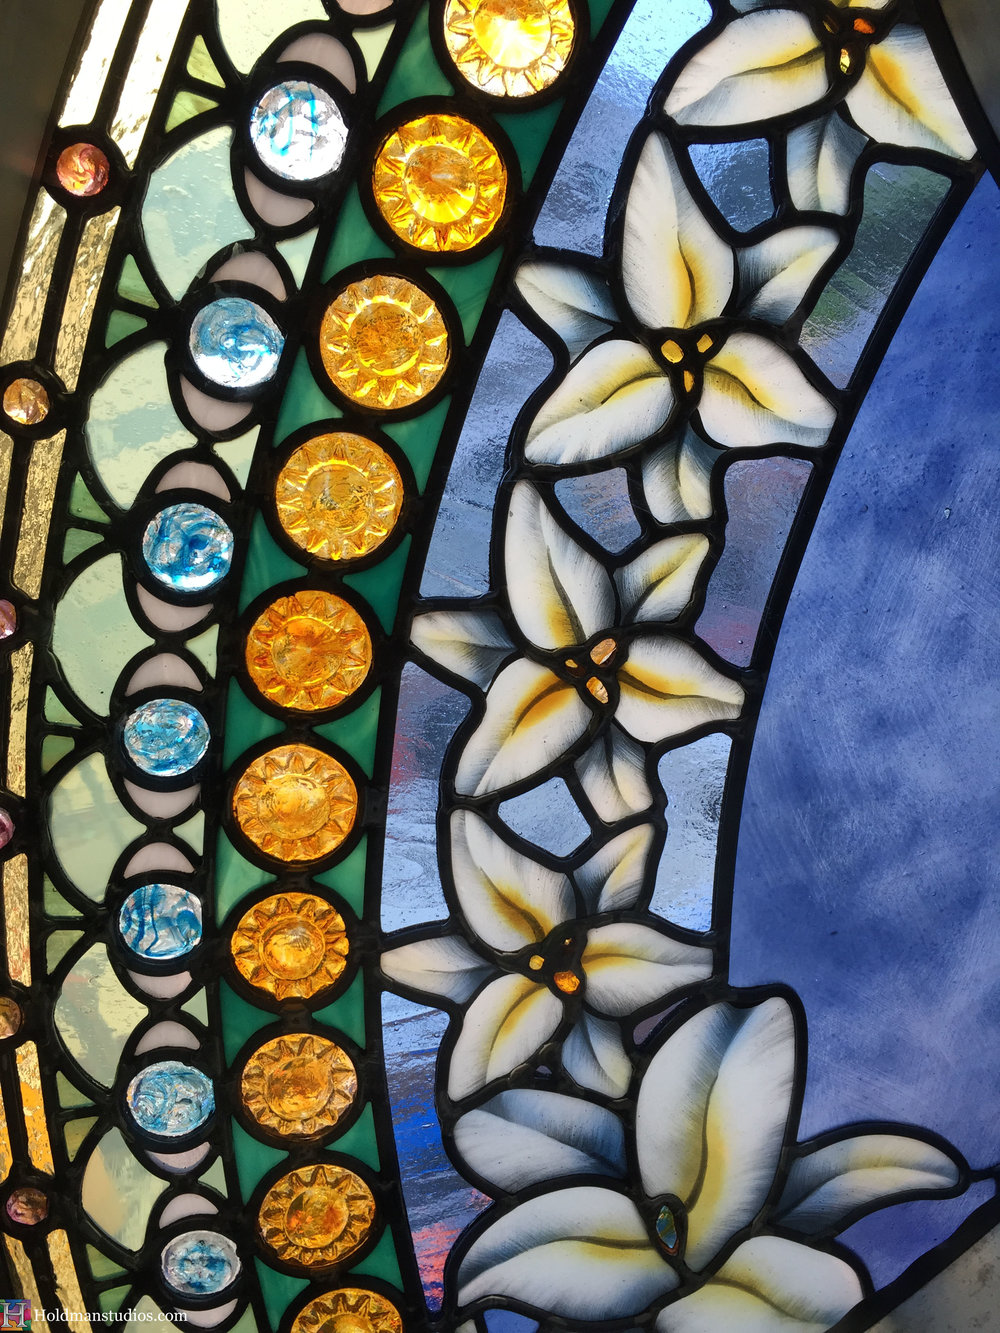 Holdman-Studios-Stained-Glass-Paris-LDS-Temple-Madonna-Lily-Flowers-Leaves-Handmade-Jewels-Crop-Window.jpg